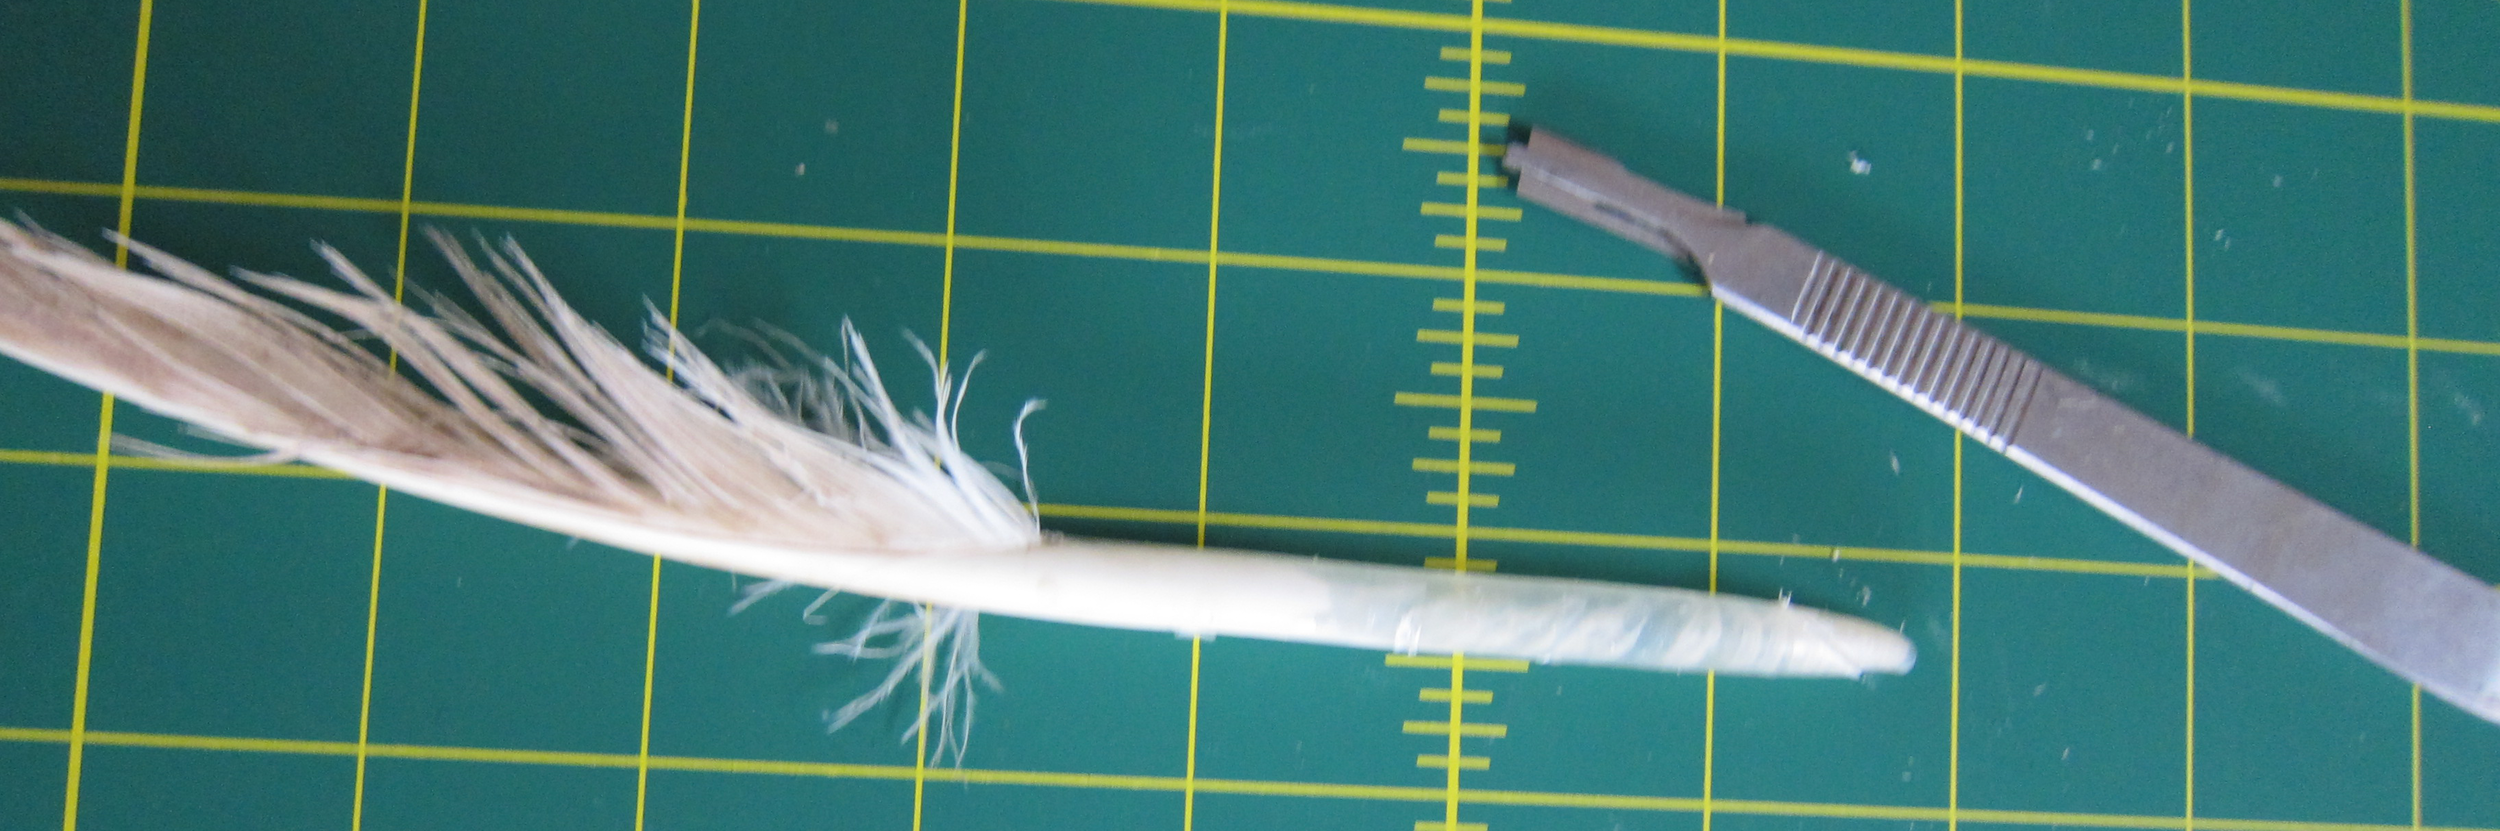 On the left, the winner of our bout, the quill. On the right, the defeated scalpel, sans head.